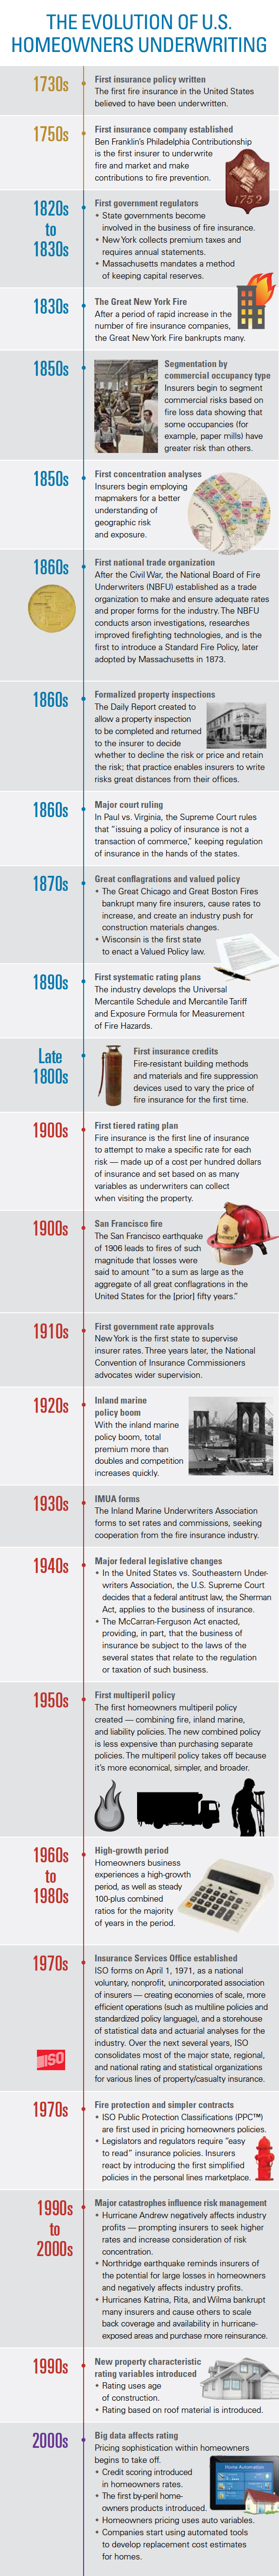 Infographic: Evolution of homeowners insurance underwriting